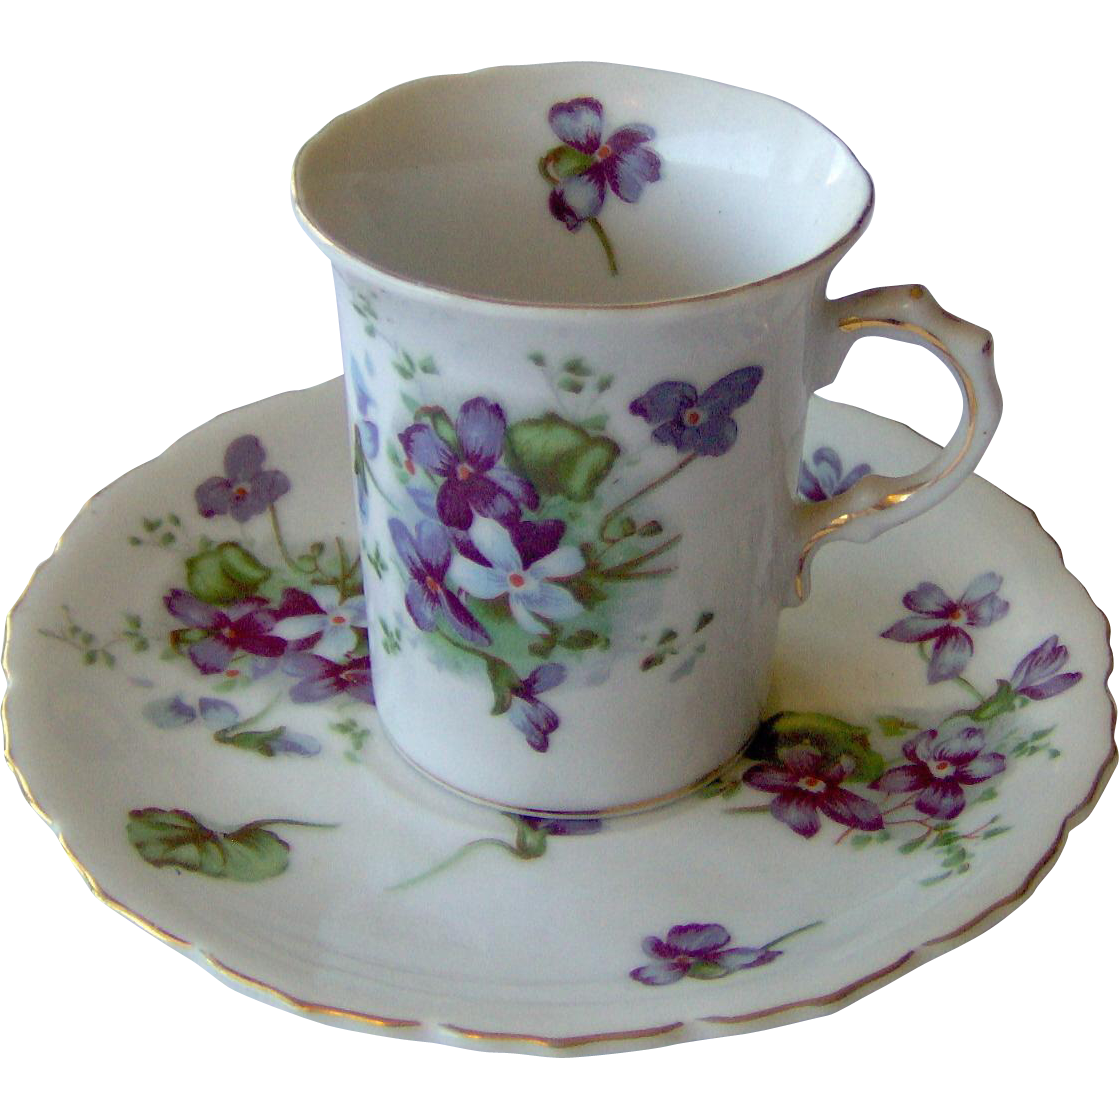 Demitasse cup and saucer with violets